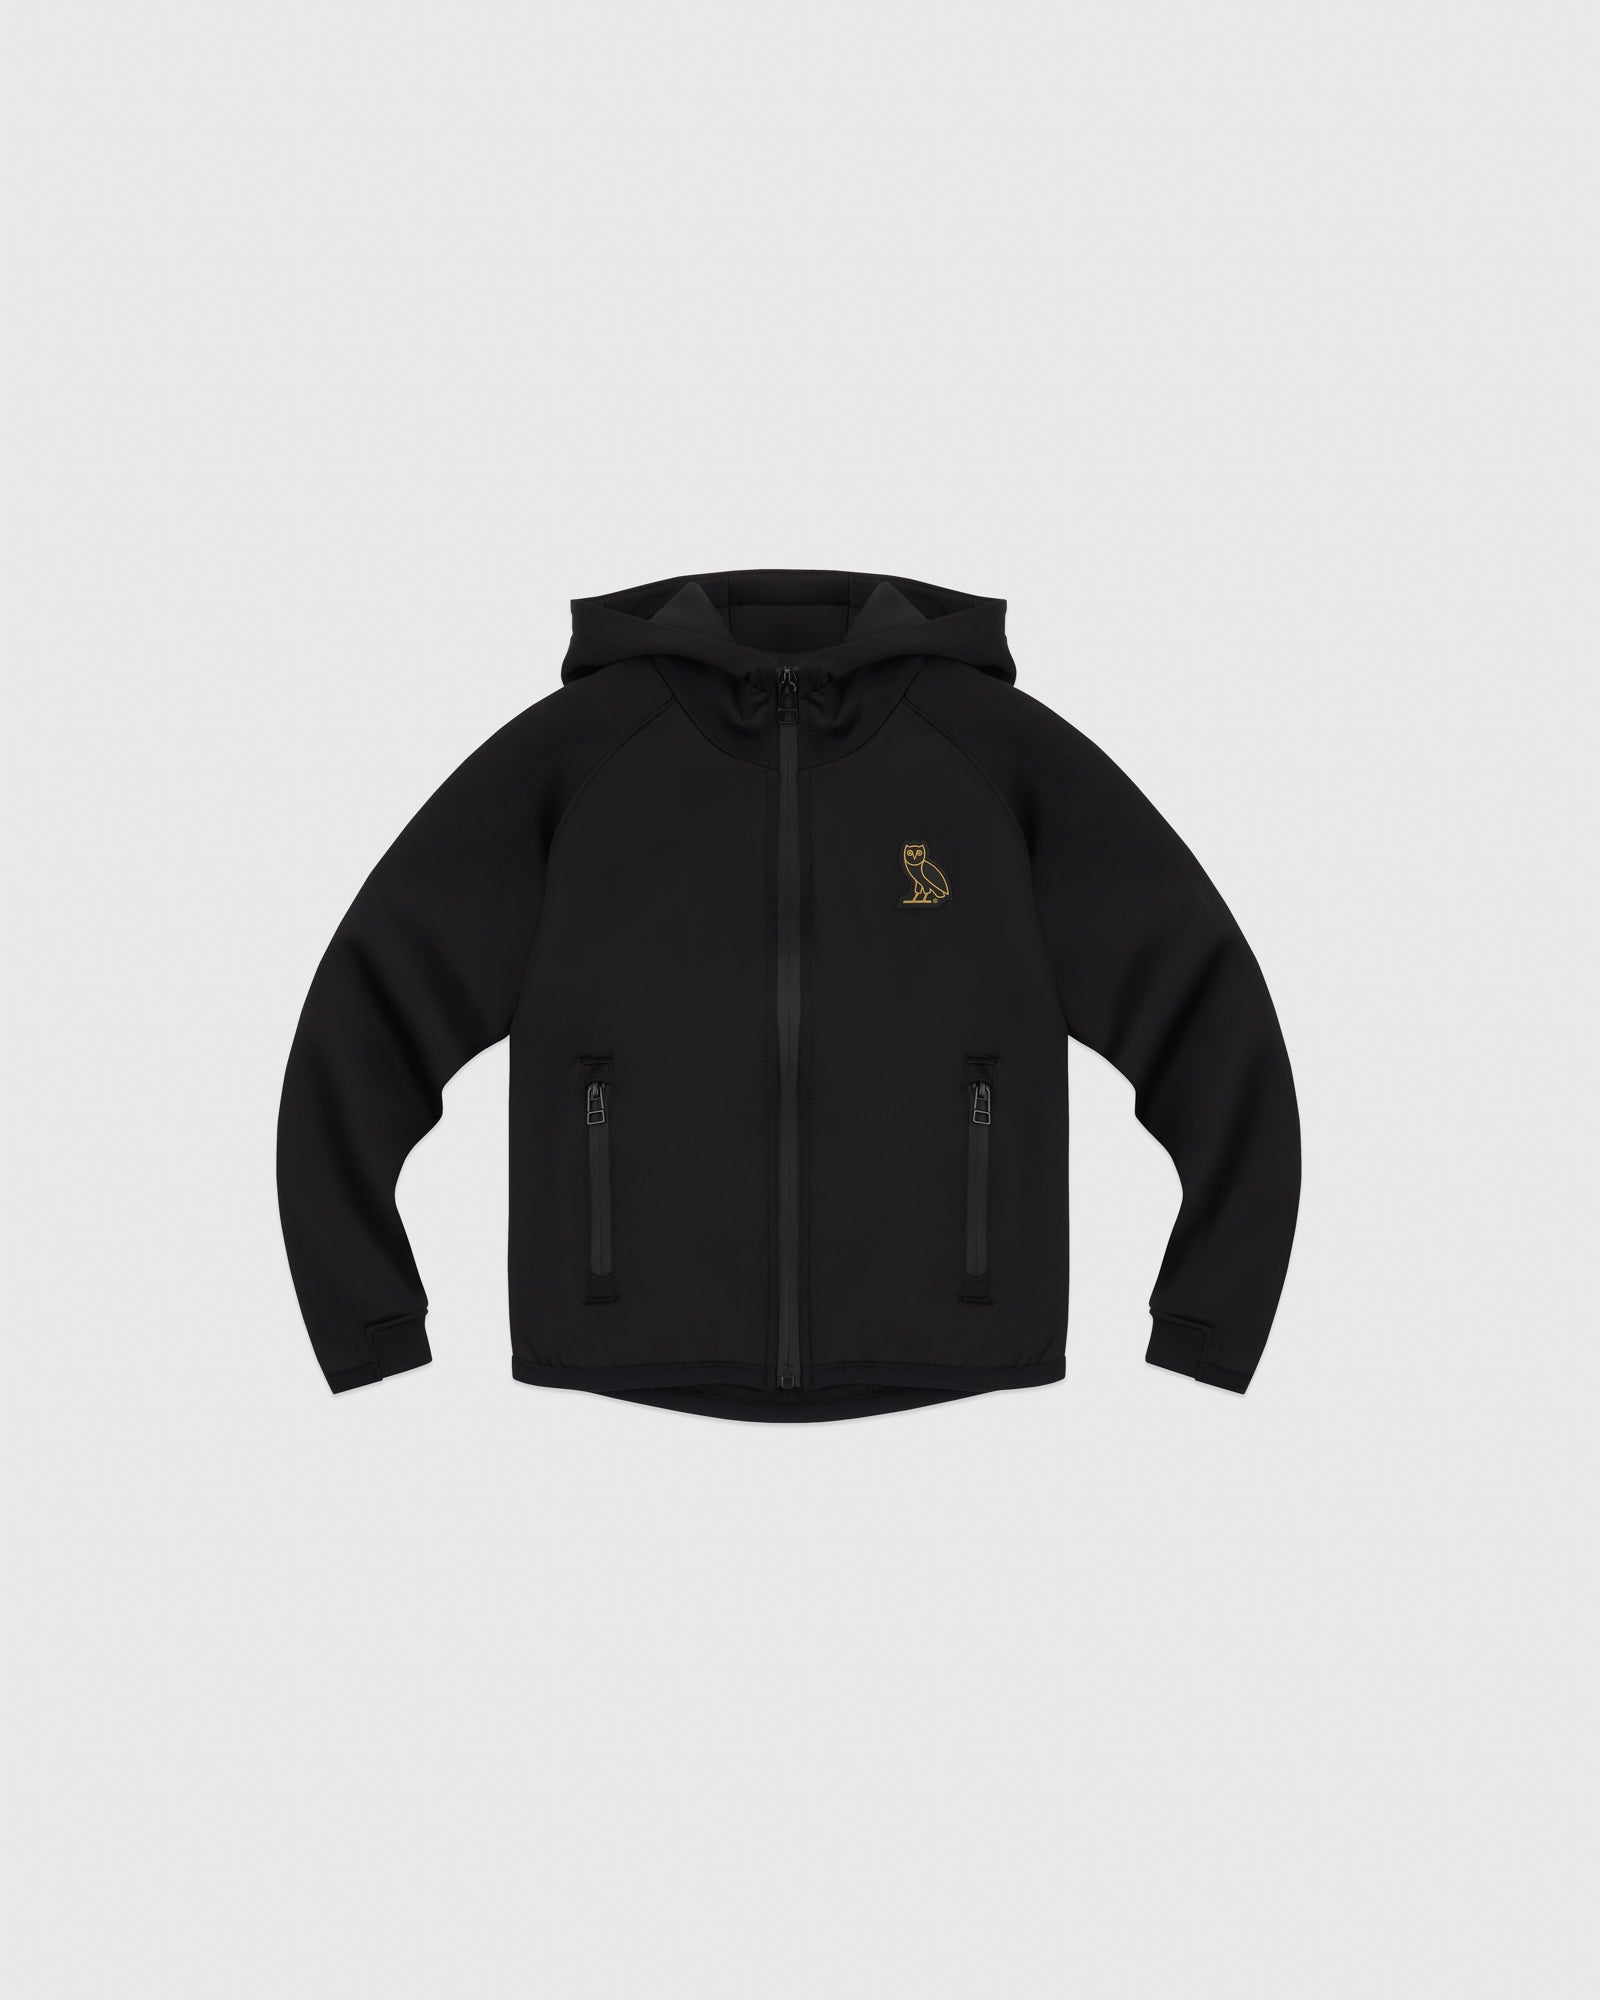 OVO KIDS INTERLOCK JACKET - BLACK